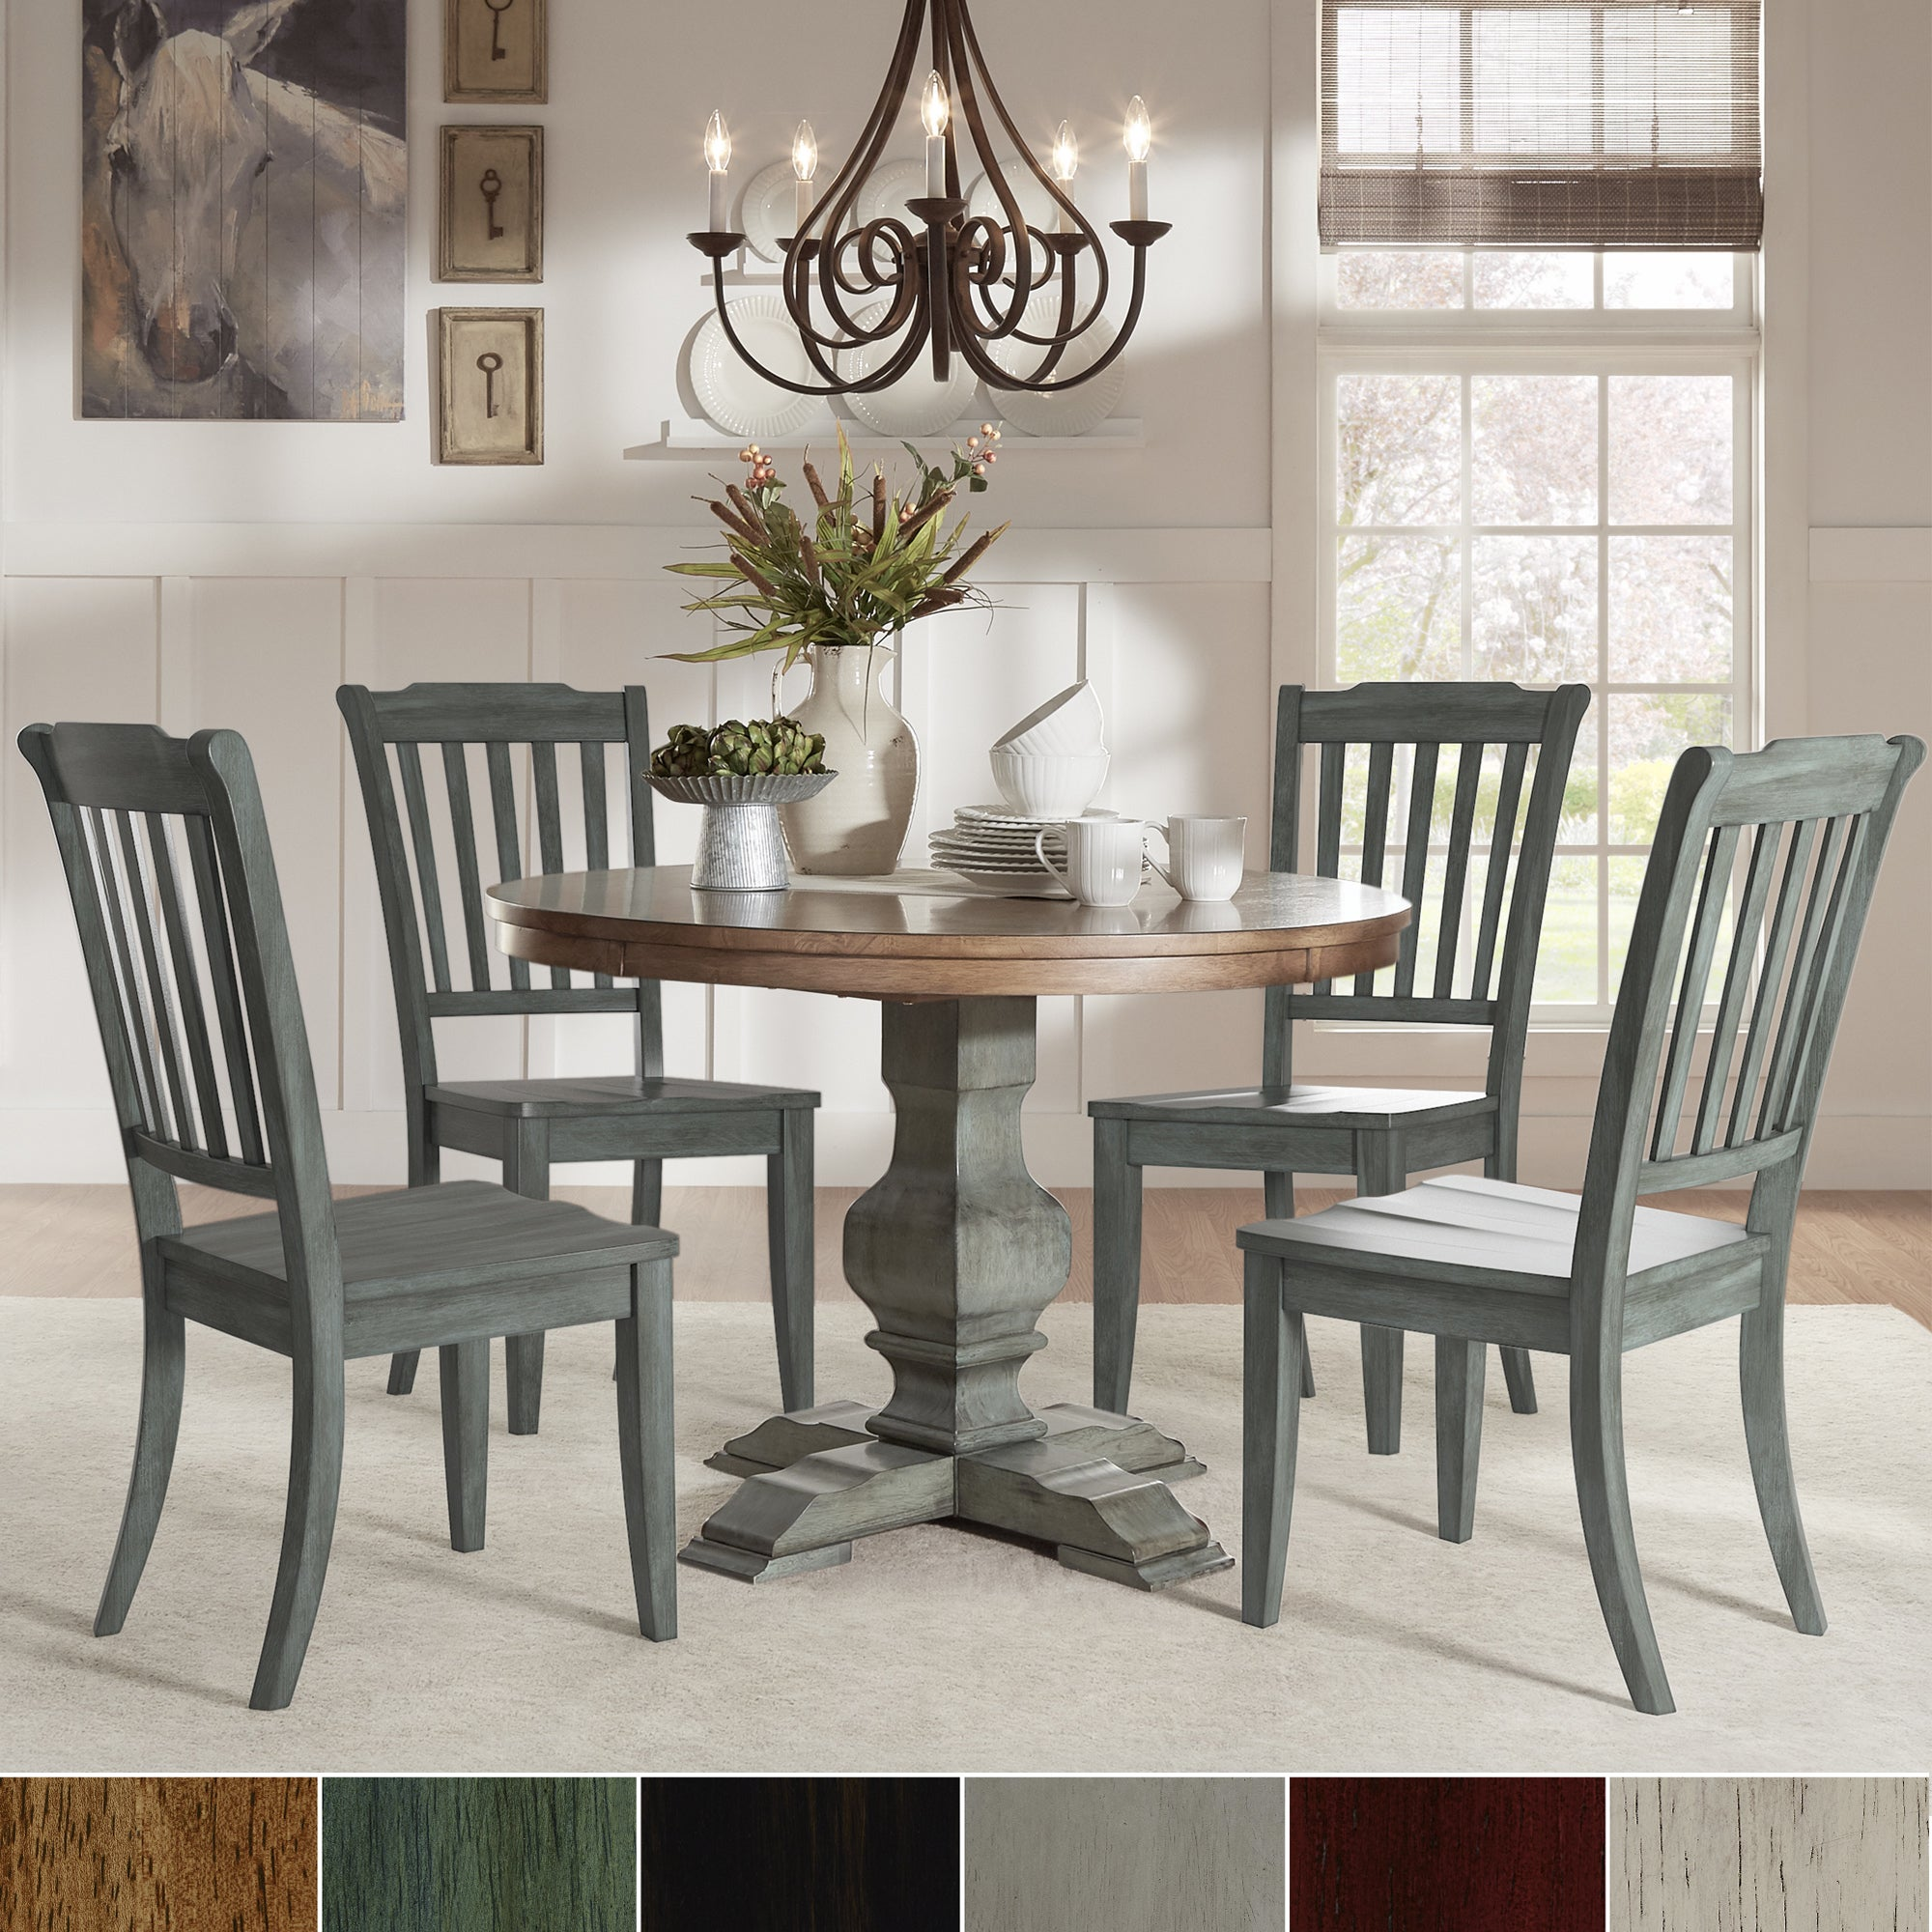 Eleanor Sage Green Round Soild Wood Top 5 Piece Dining Set Slat Back By Inspire Q Clic